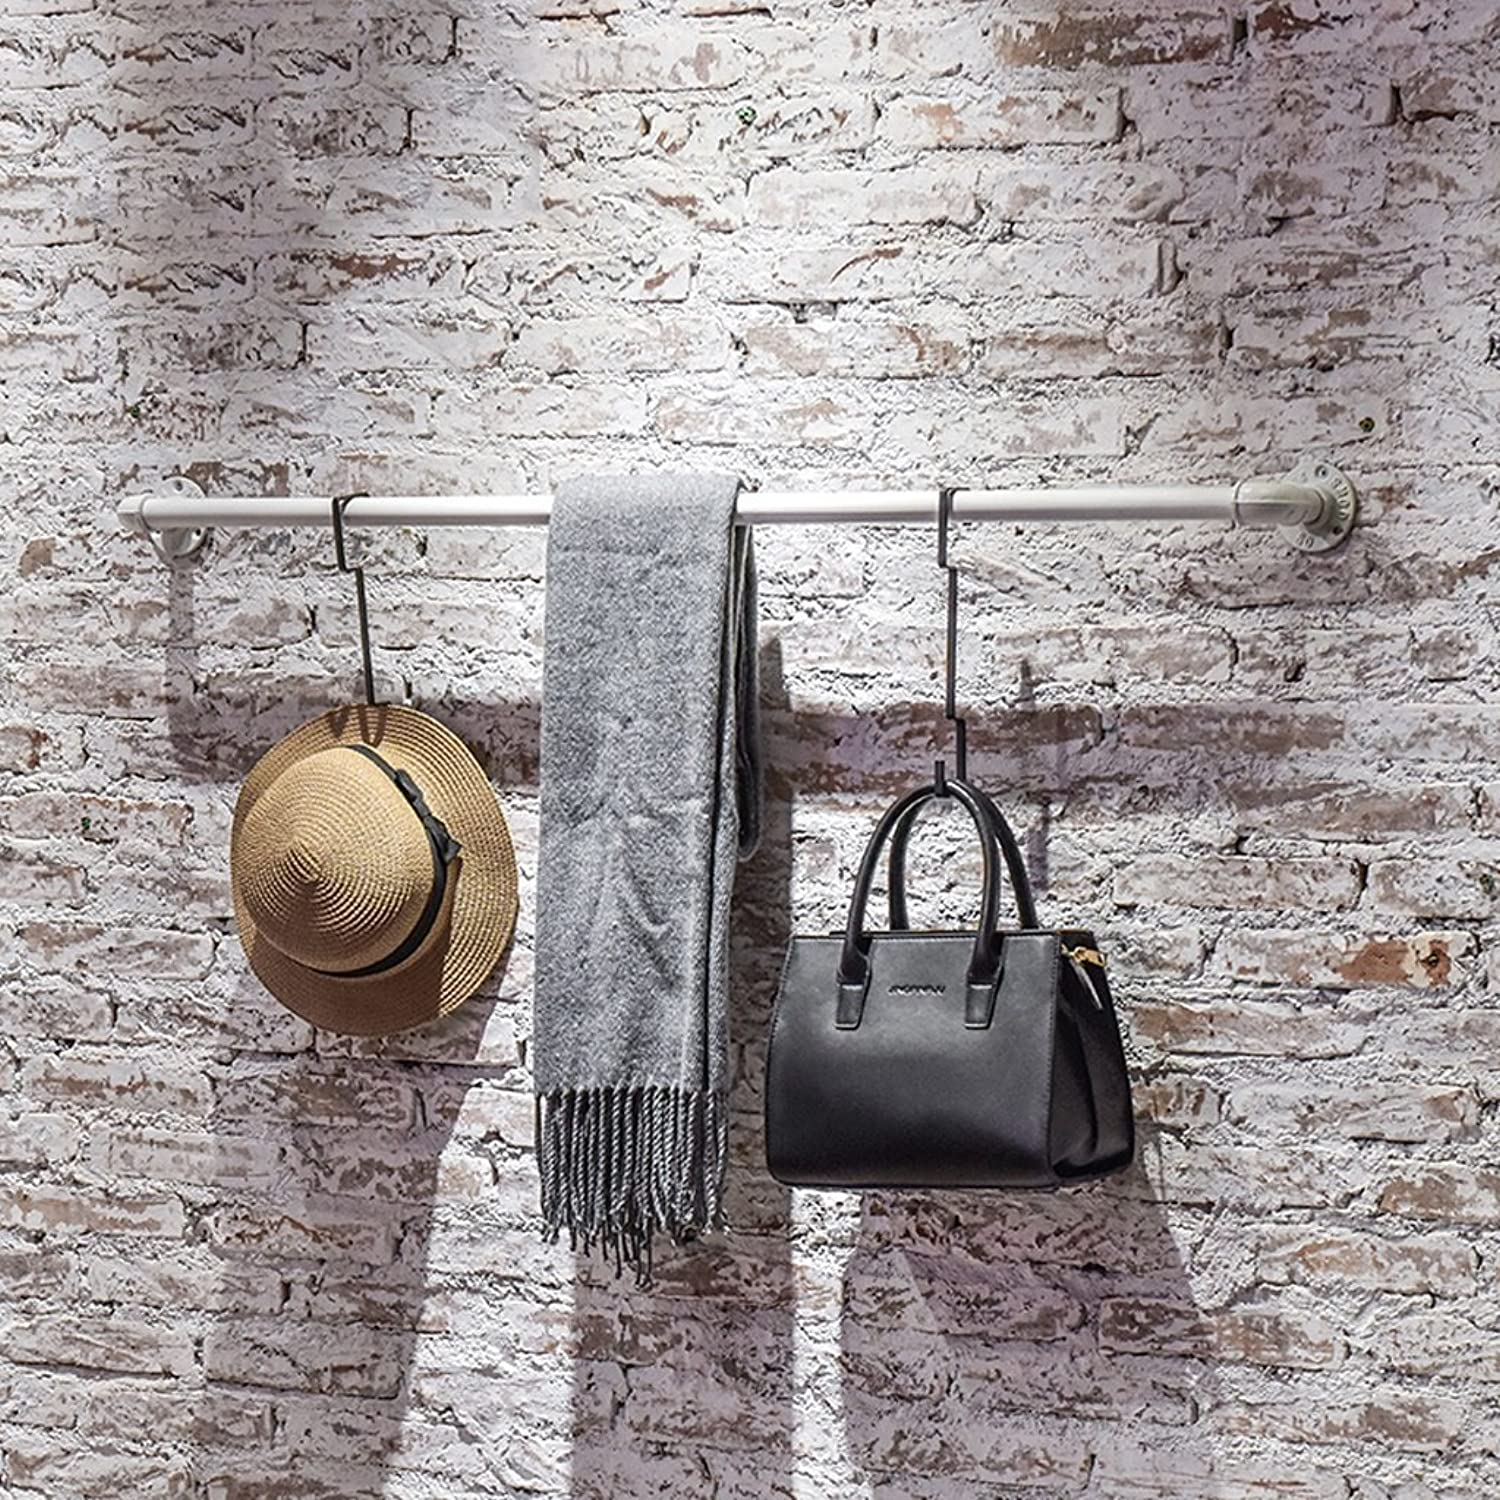 Drying Rack Indoor Airer Clothes Airer Iron Wood Wall Mounted Coat Rack Vintage Plumbing Wall Rack Clothes shoes White Hangers Solid And Durable Not Rusty Easy To Clean Living Bedroom Study Bar (1227